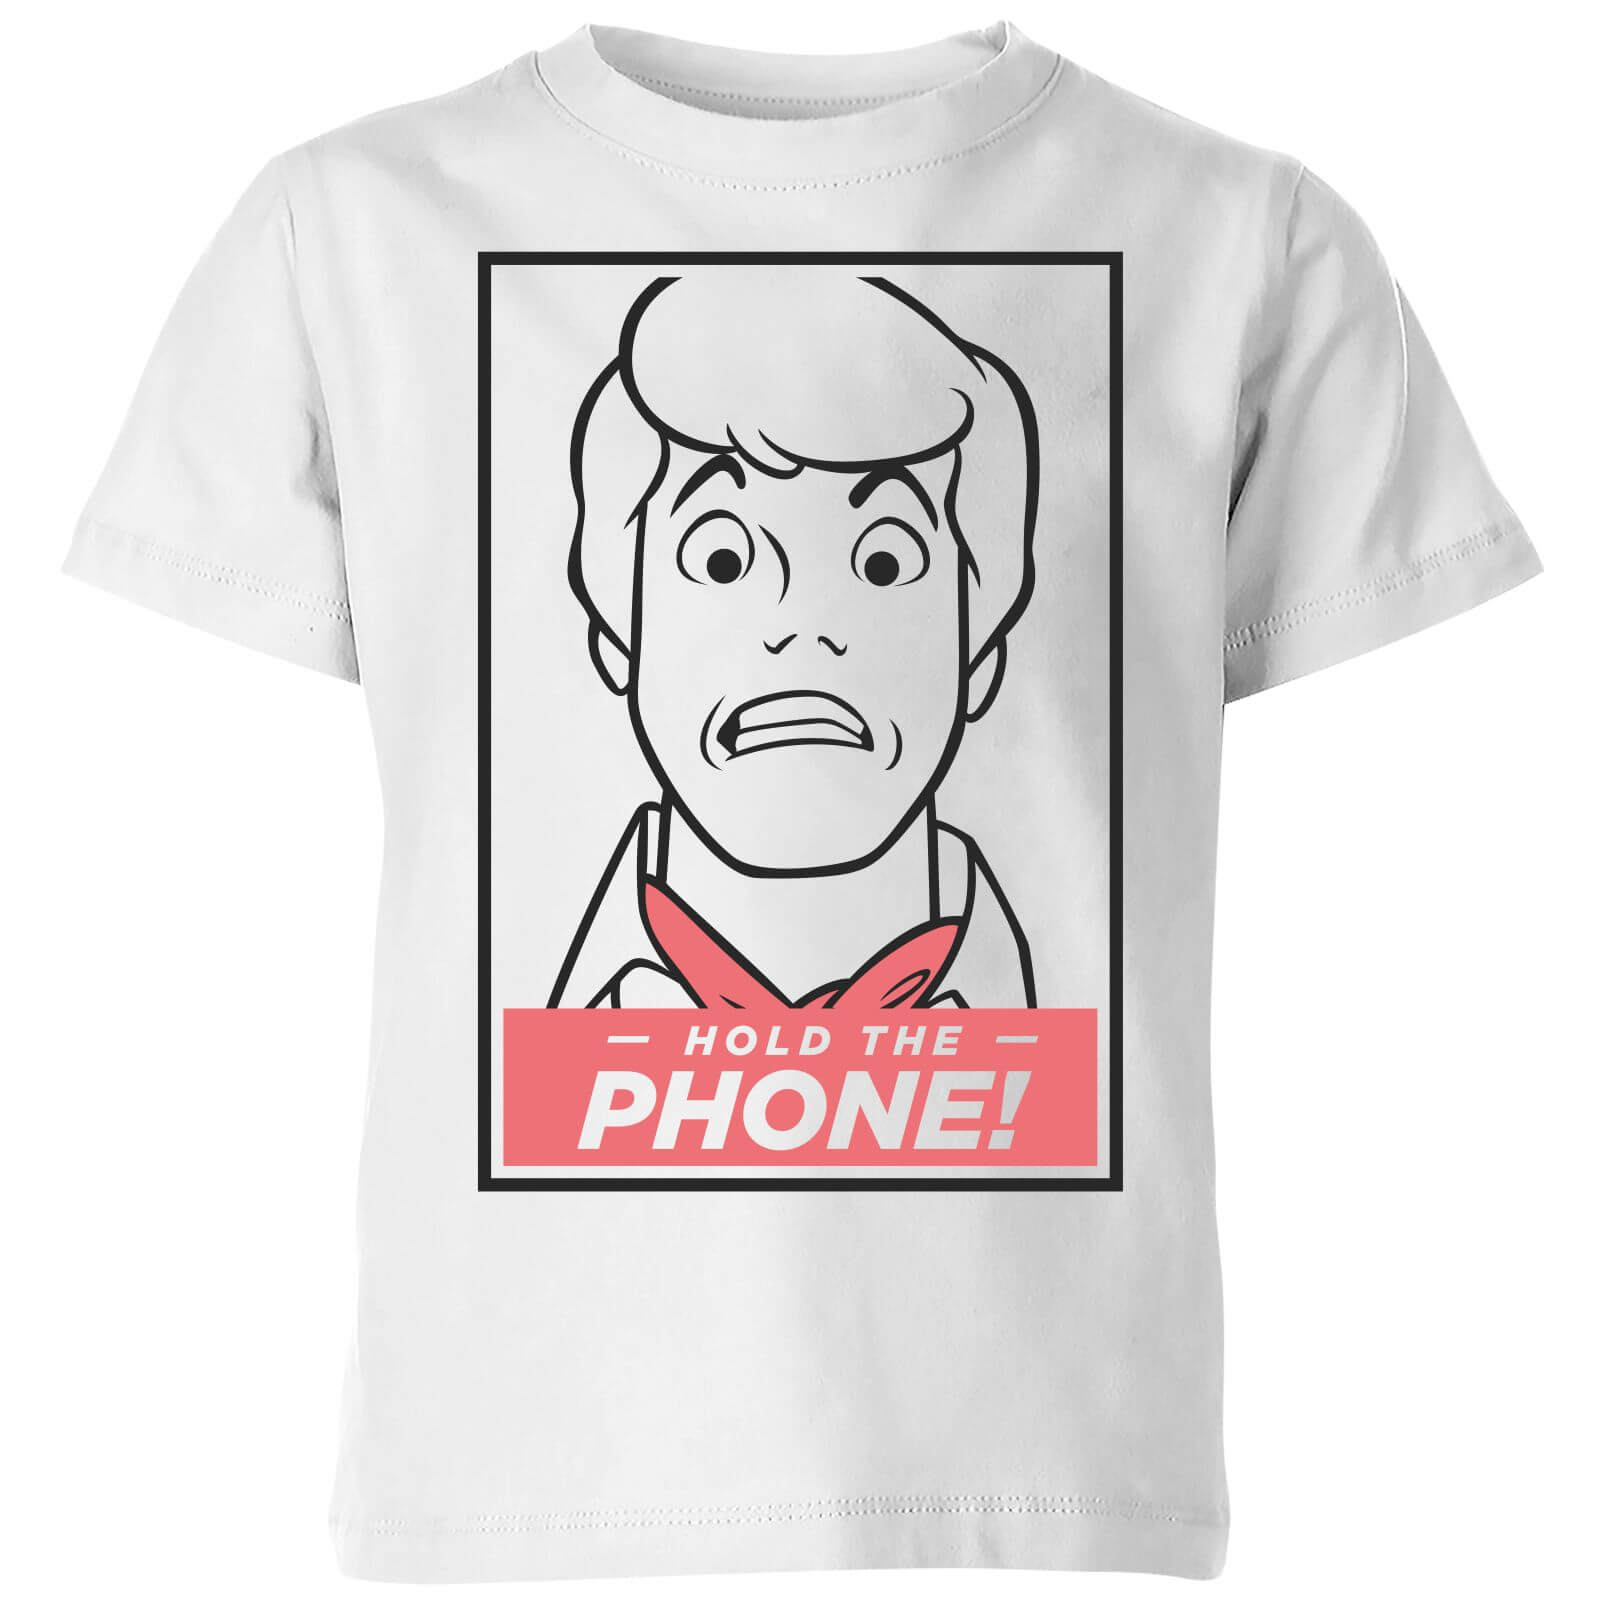 Scooby Doo Hold The Phone Kids' T-Shirt - White - 11-12 años - Blanco de Scooby Doo